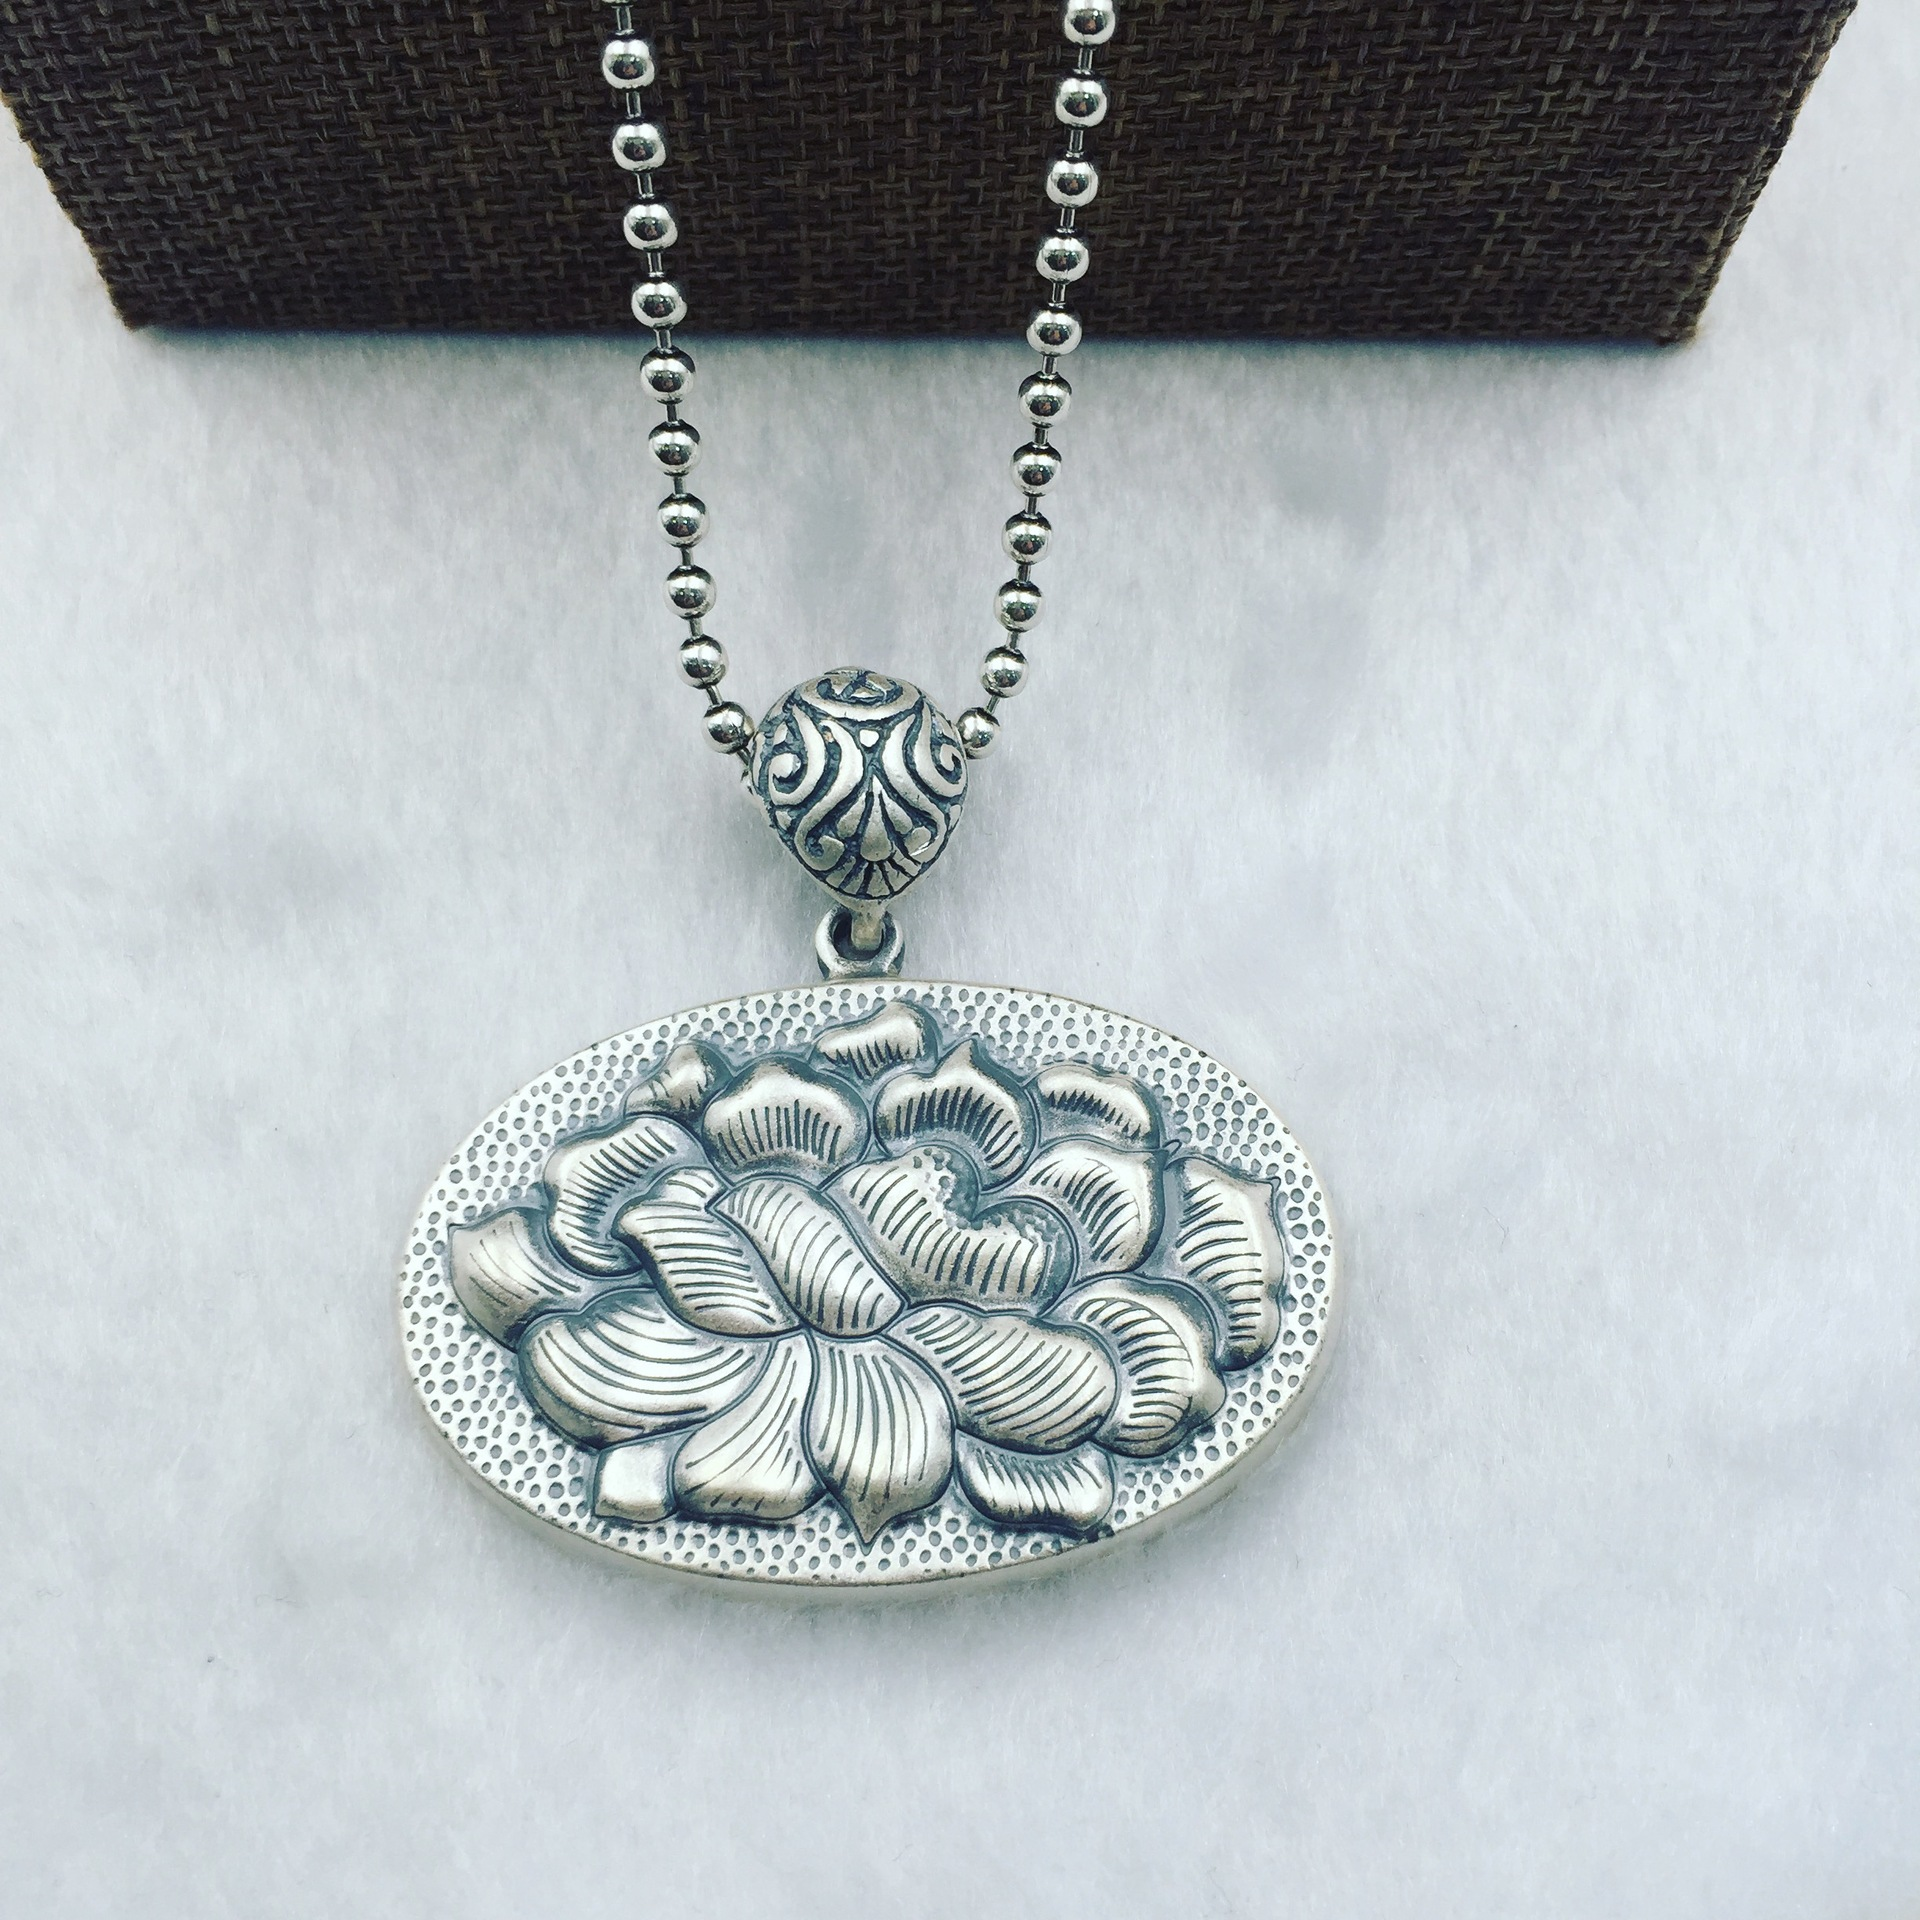 ancient Thai S925 pure silver intime big peony card STERLING SILVER ROUND OVAL SILVER PENDANT folk style sweater chain yves rocher yves rocher бальзам ополаскиватель для восстановления с жожоба и миндалем